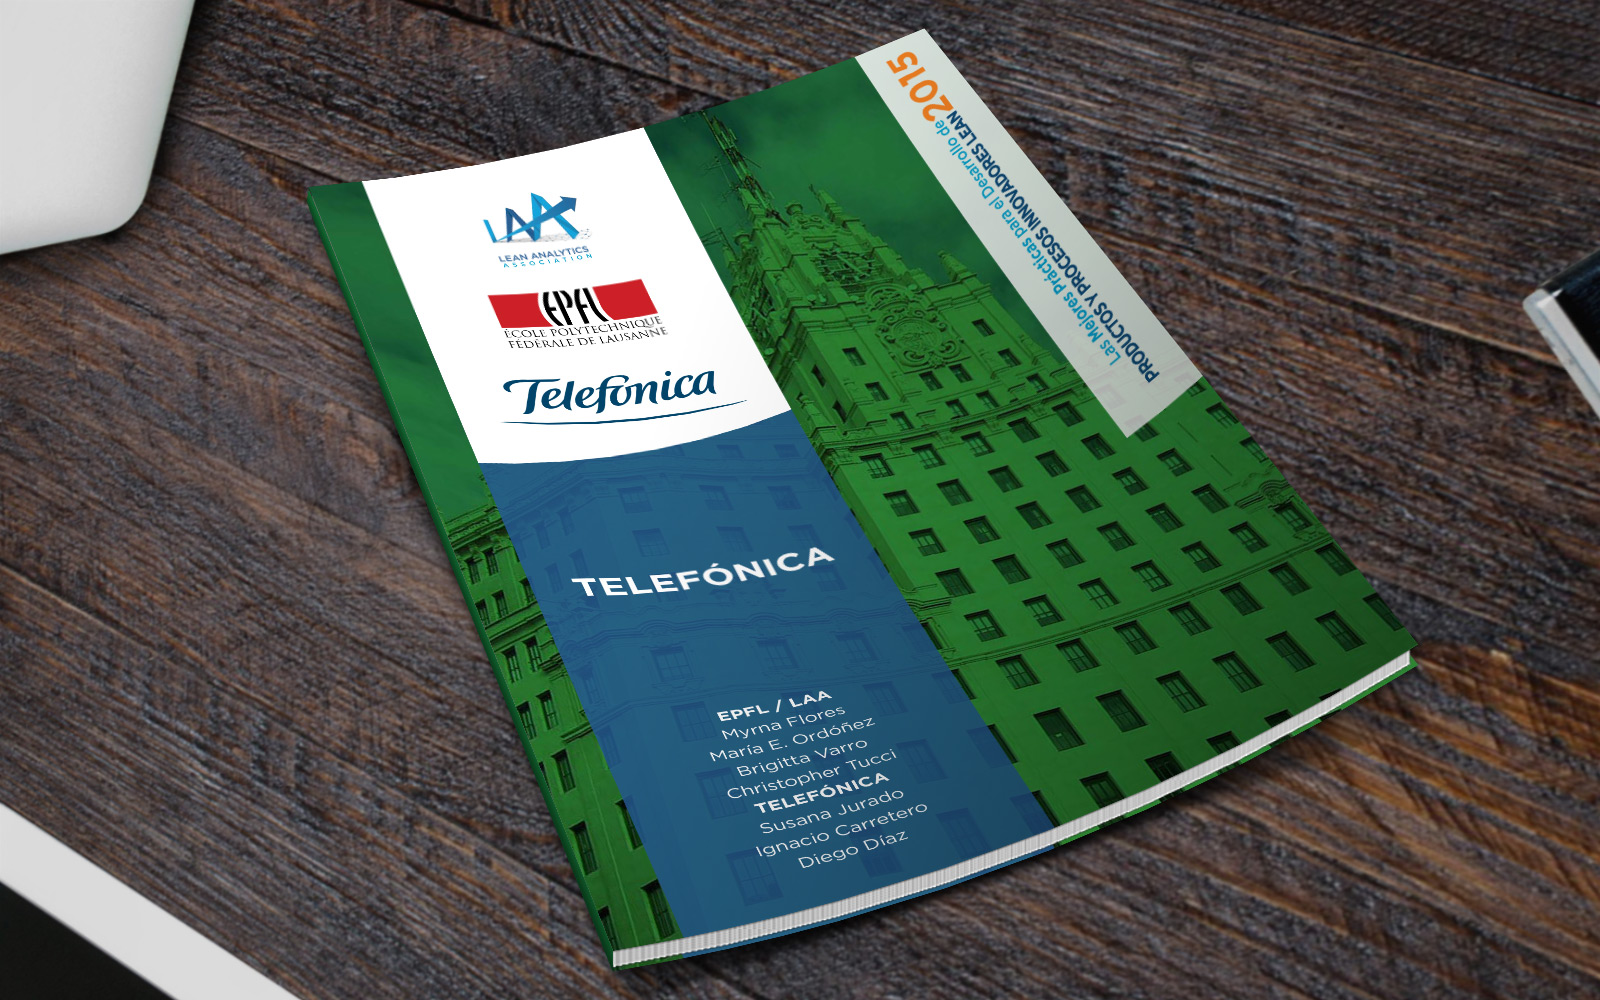 laa-library_cases-telefonica-es